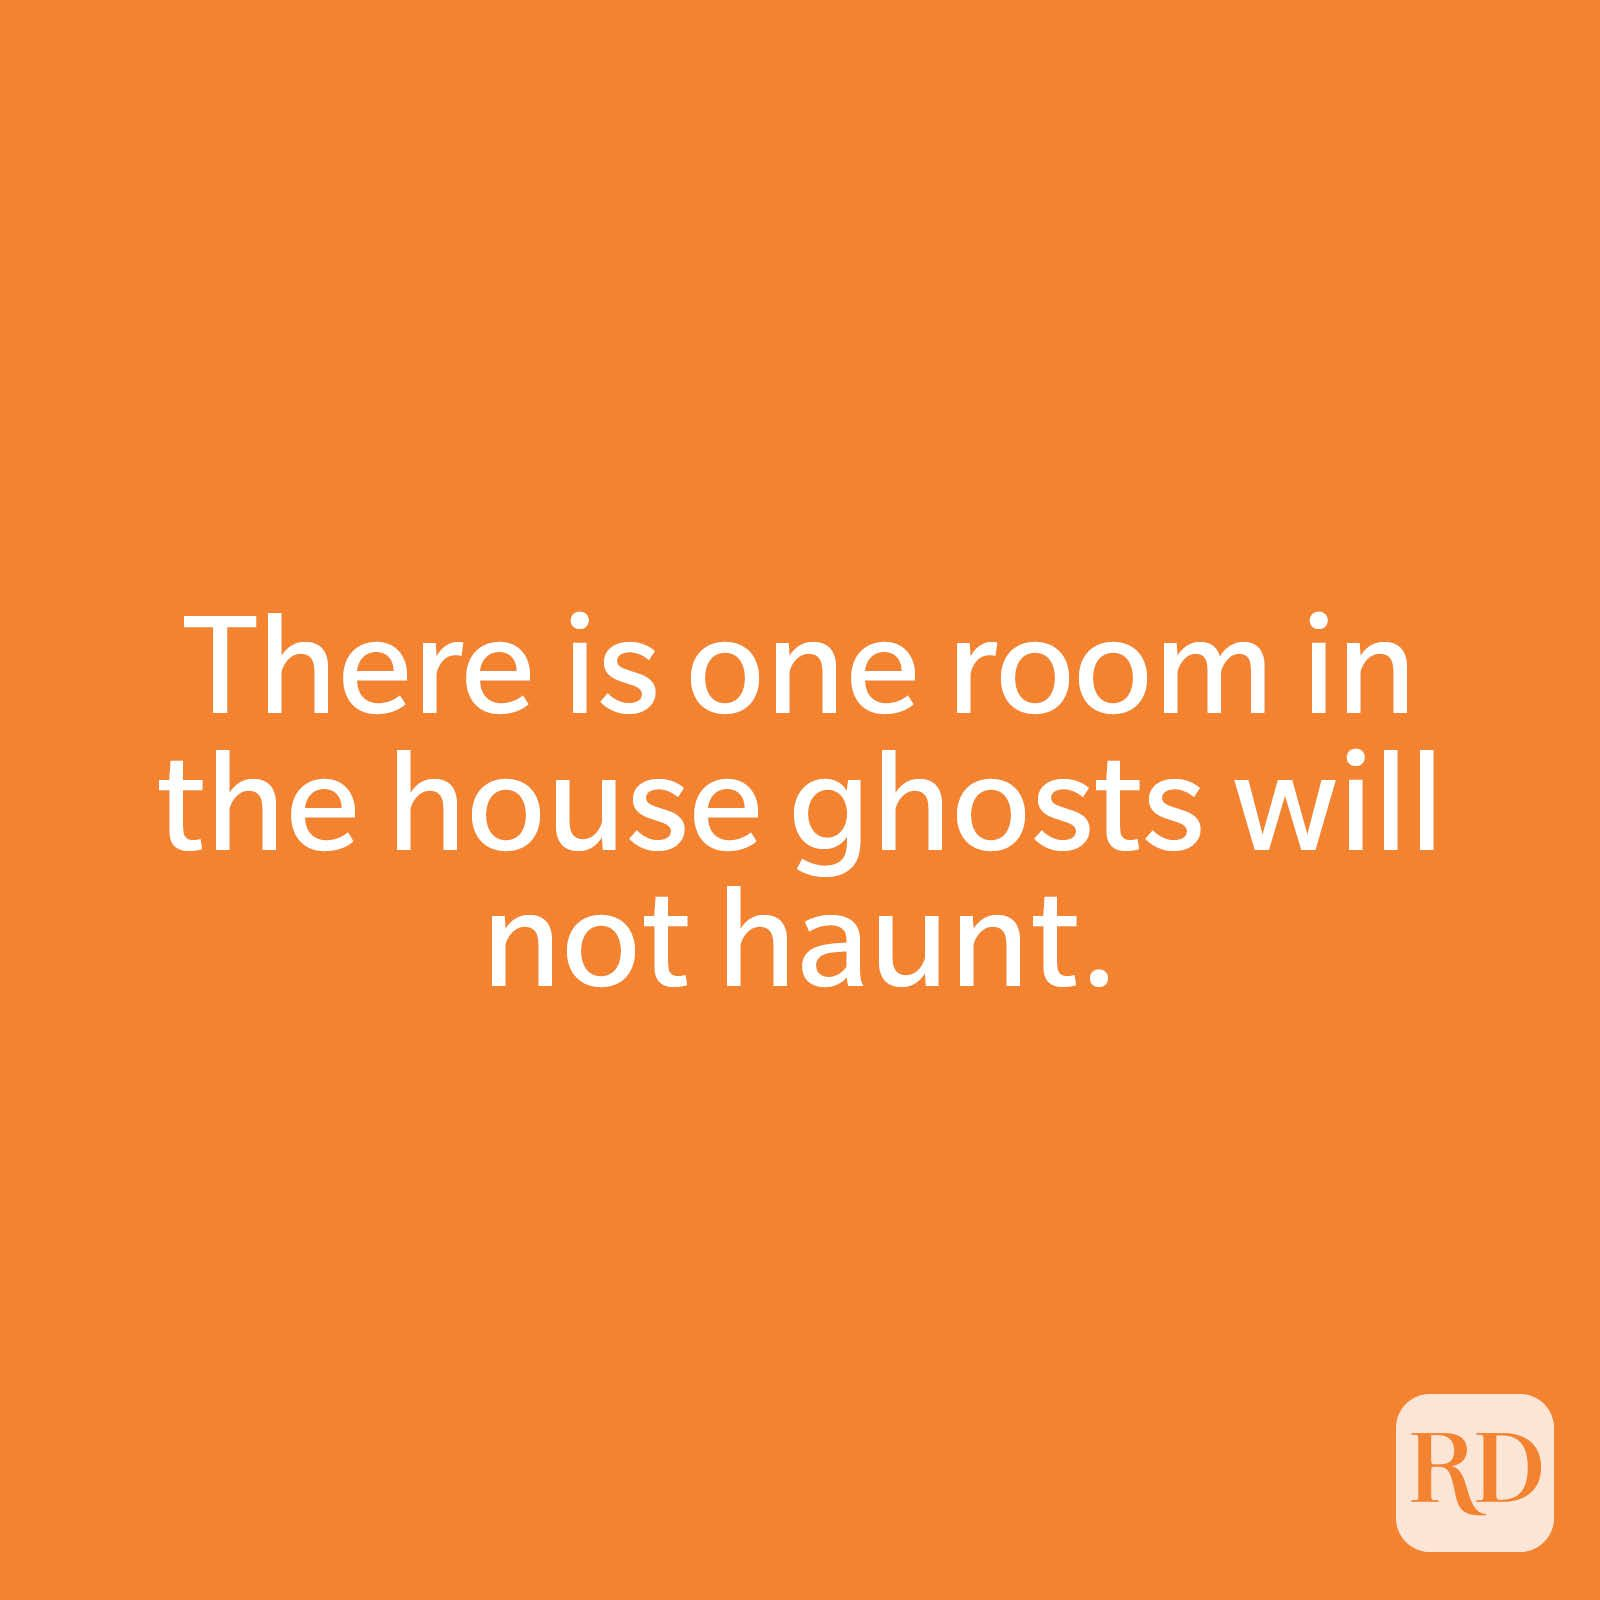 There is one room in the house ghosts will not haunt.